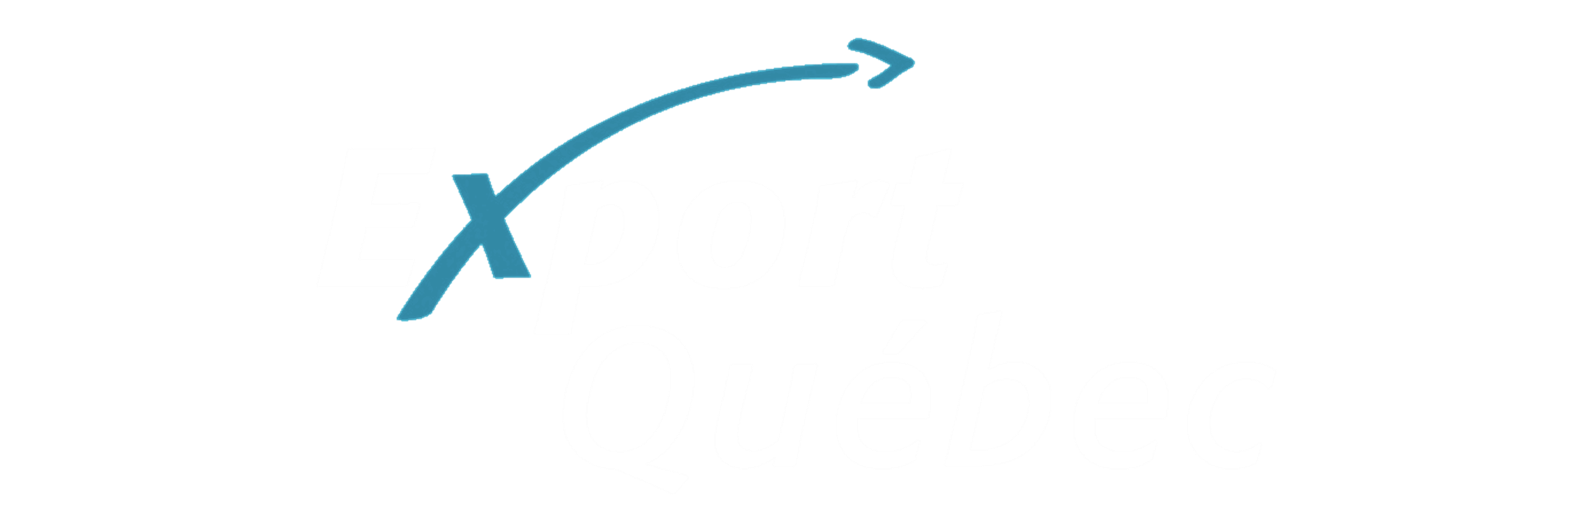 Export Quebec